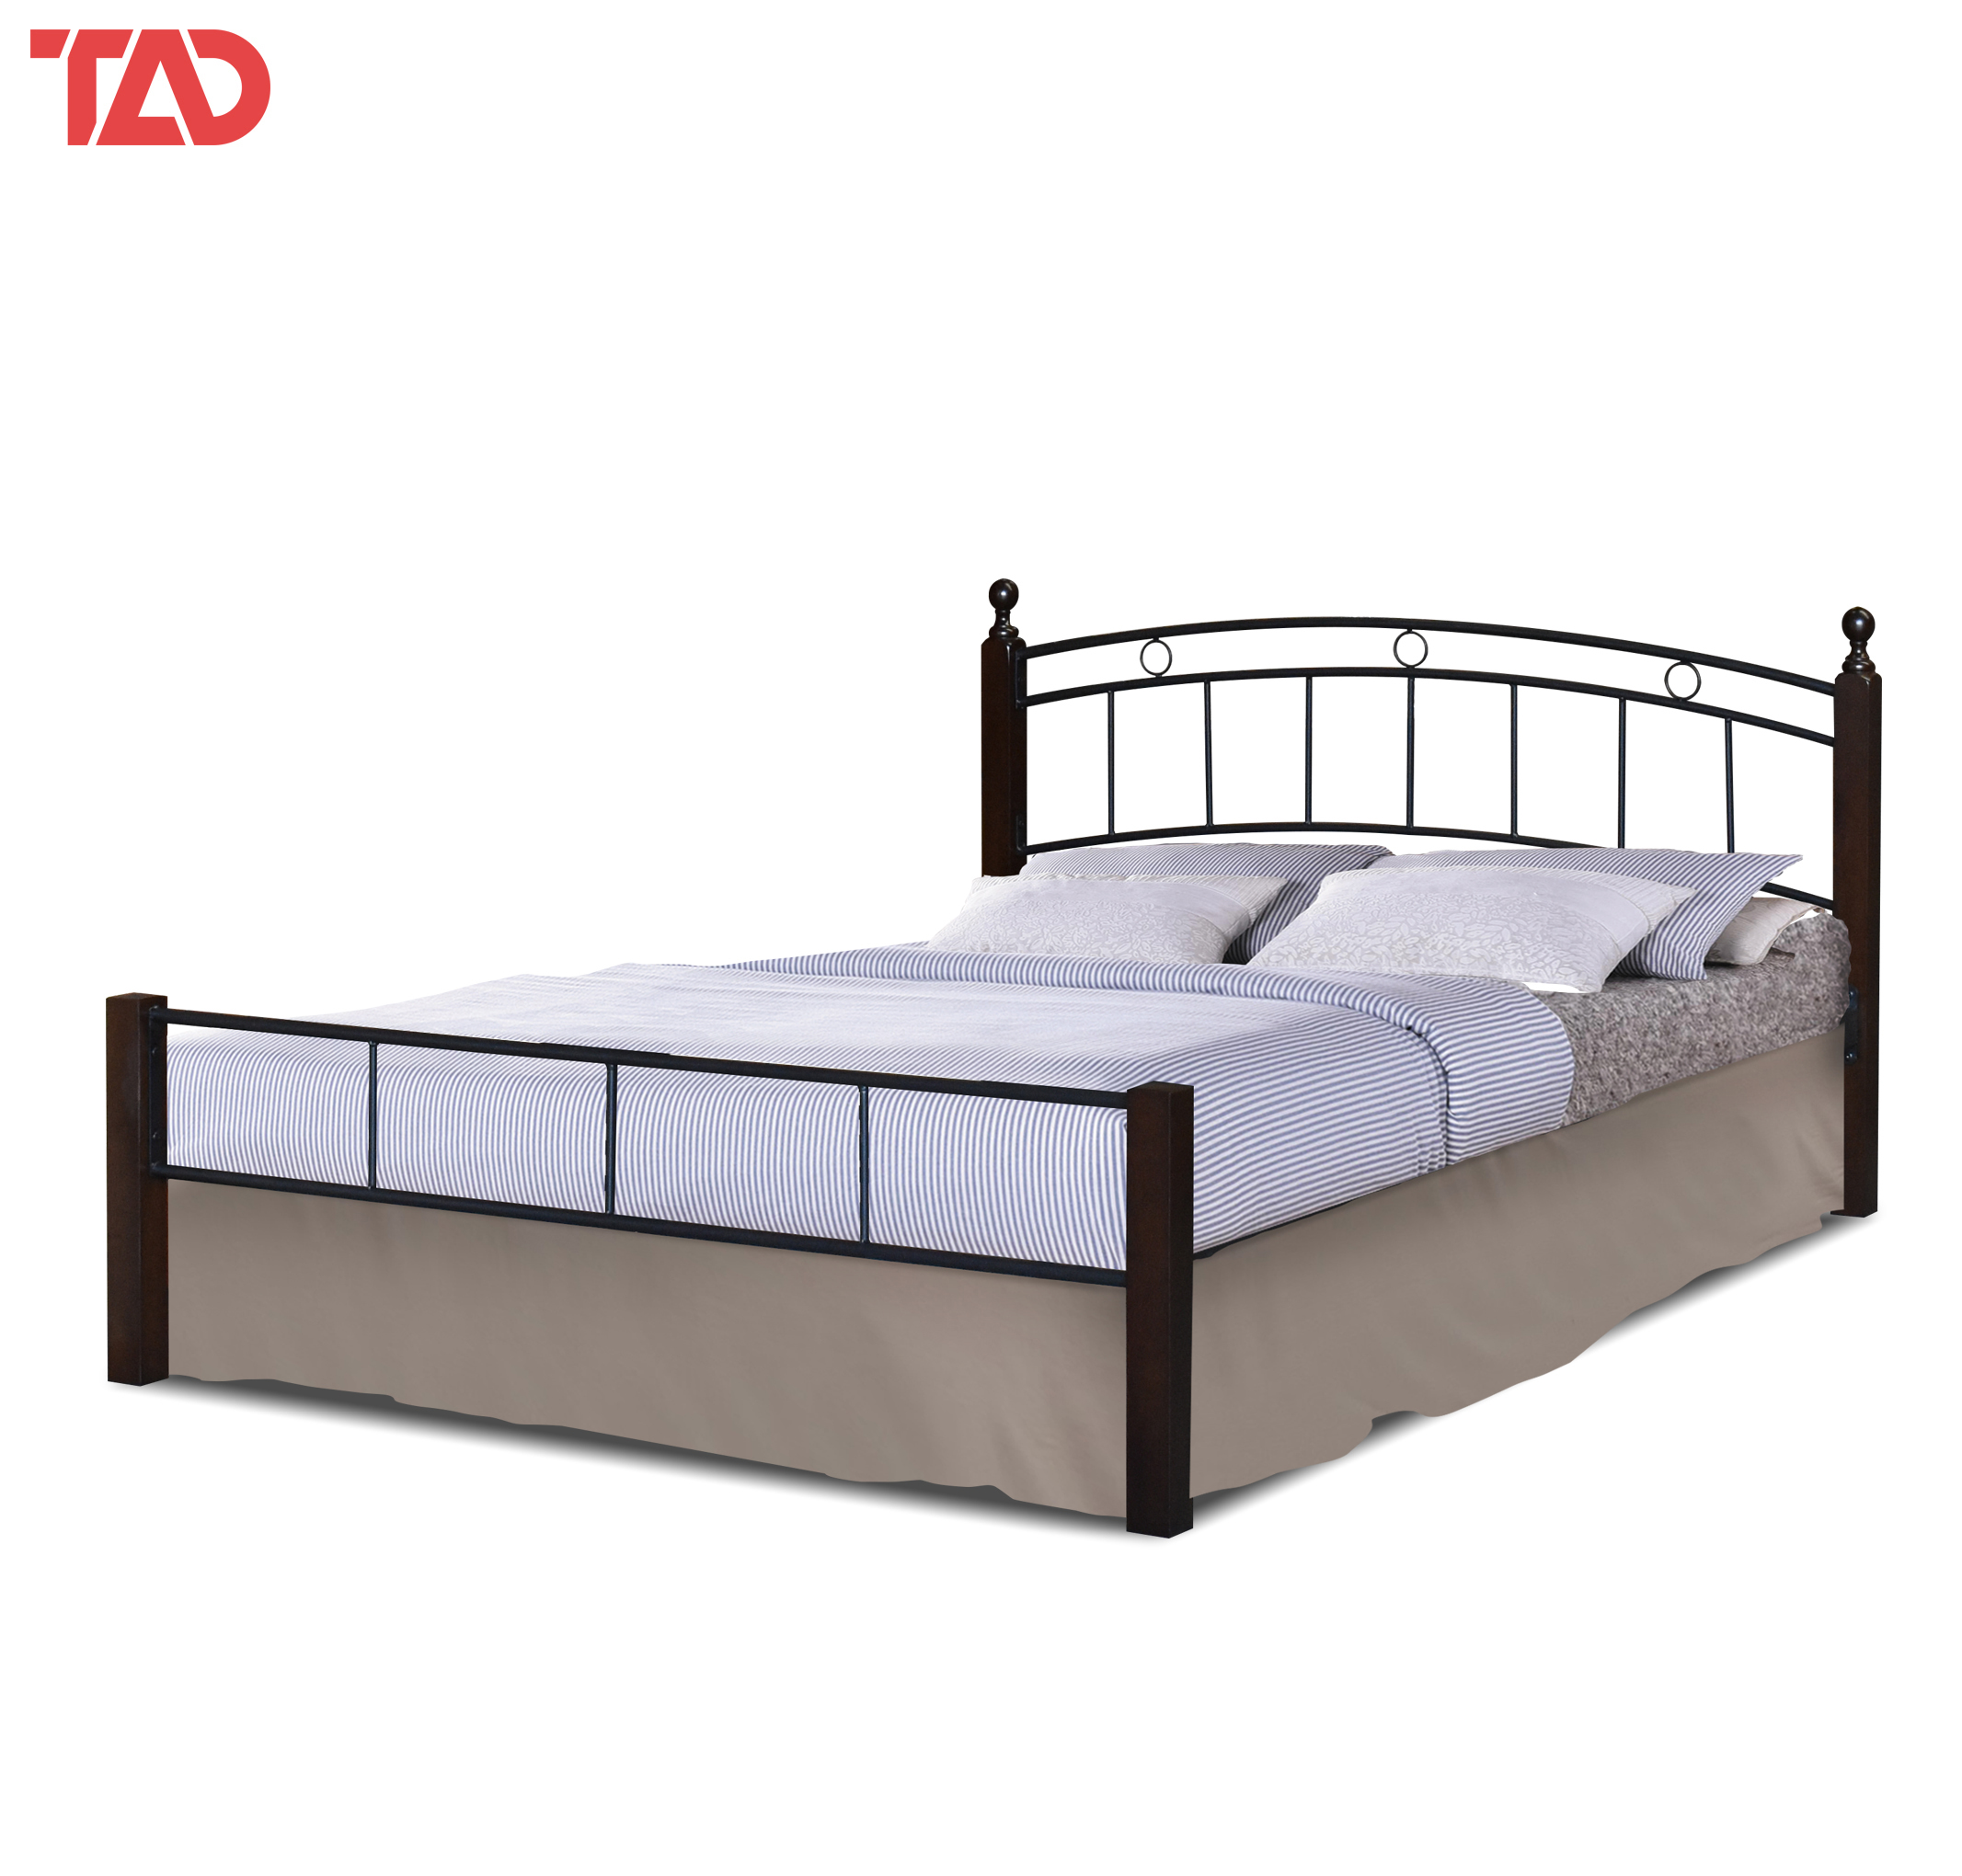 Buy Beds At Best Price Online Lazada Com Ph